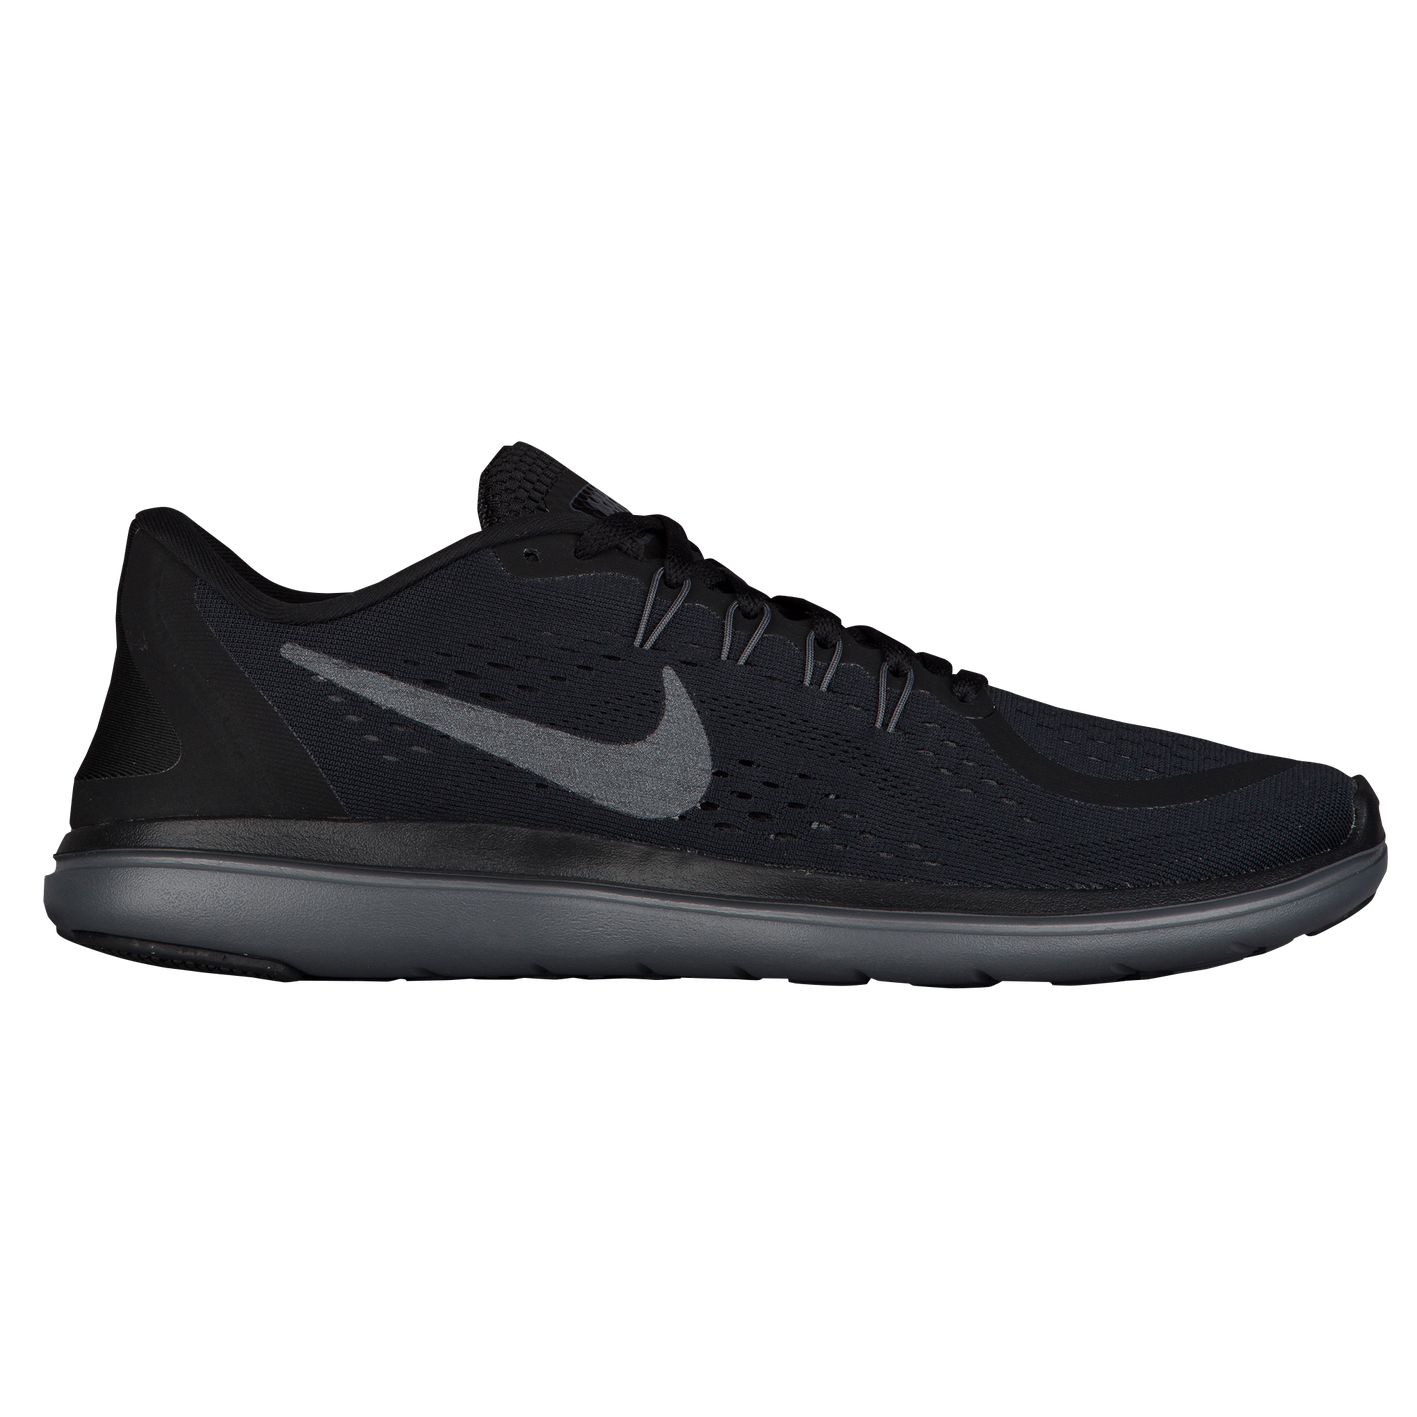 443b921ce99d75 Nike Flex RN 2017 - Men s.  74.99. Product    98457005. Selected Style   Black Metallic Hematite Anthracite Dark Grey ...